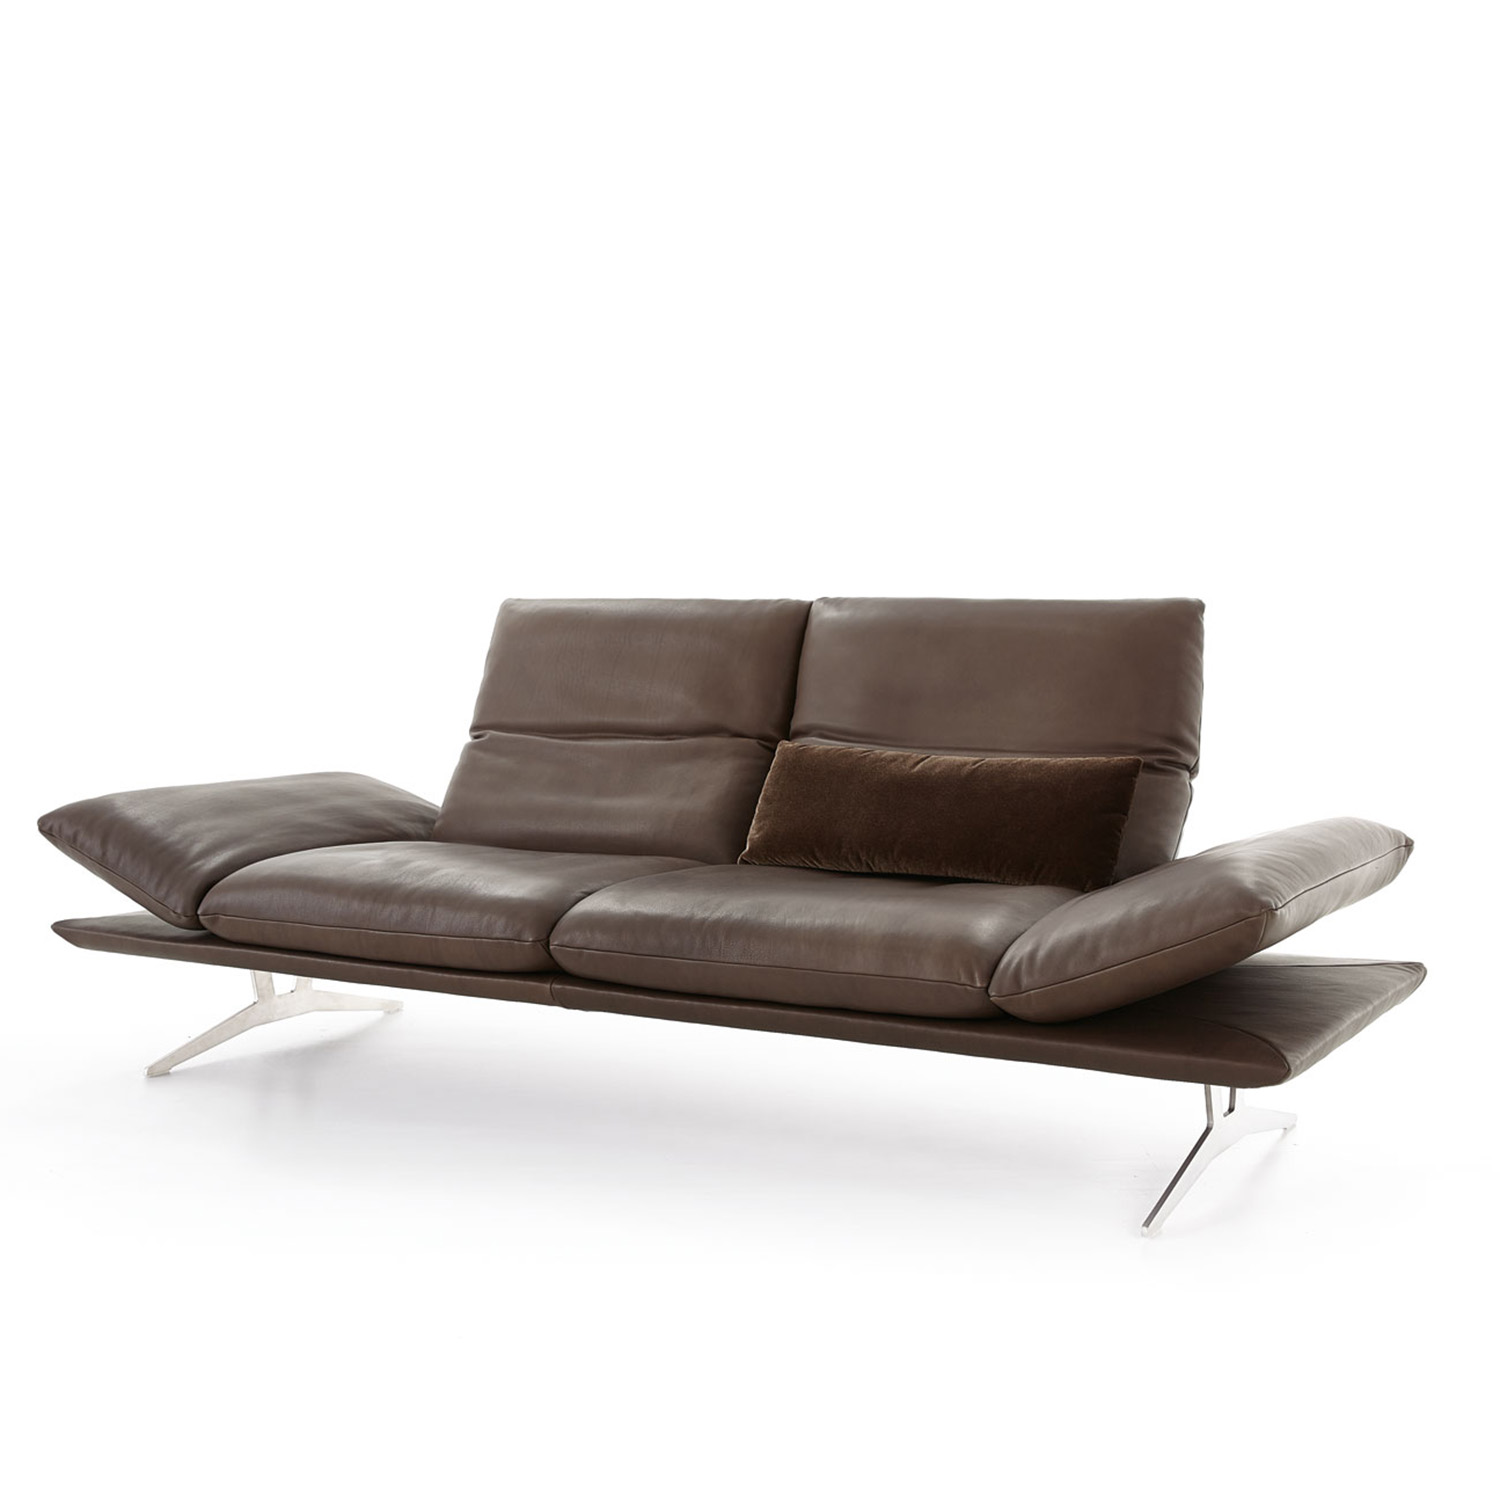 Koinor sofa francis in braun leder m bel b r ag for Sofa koinor